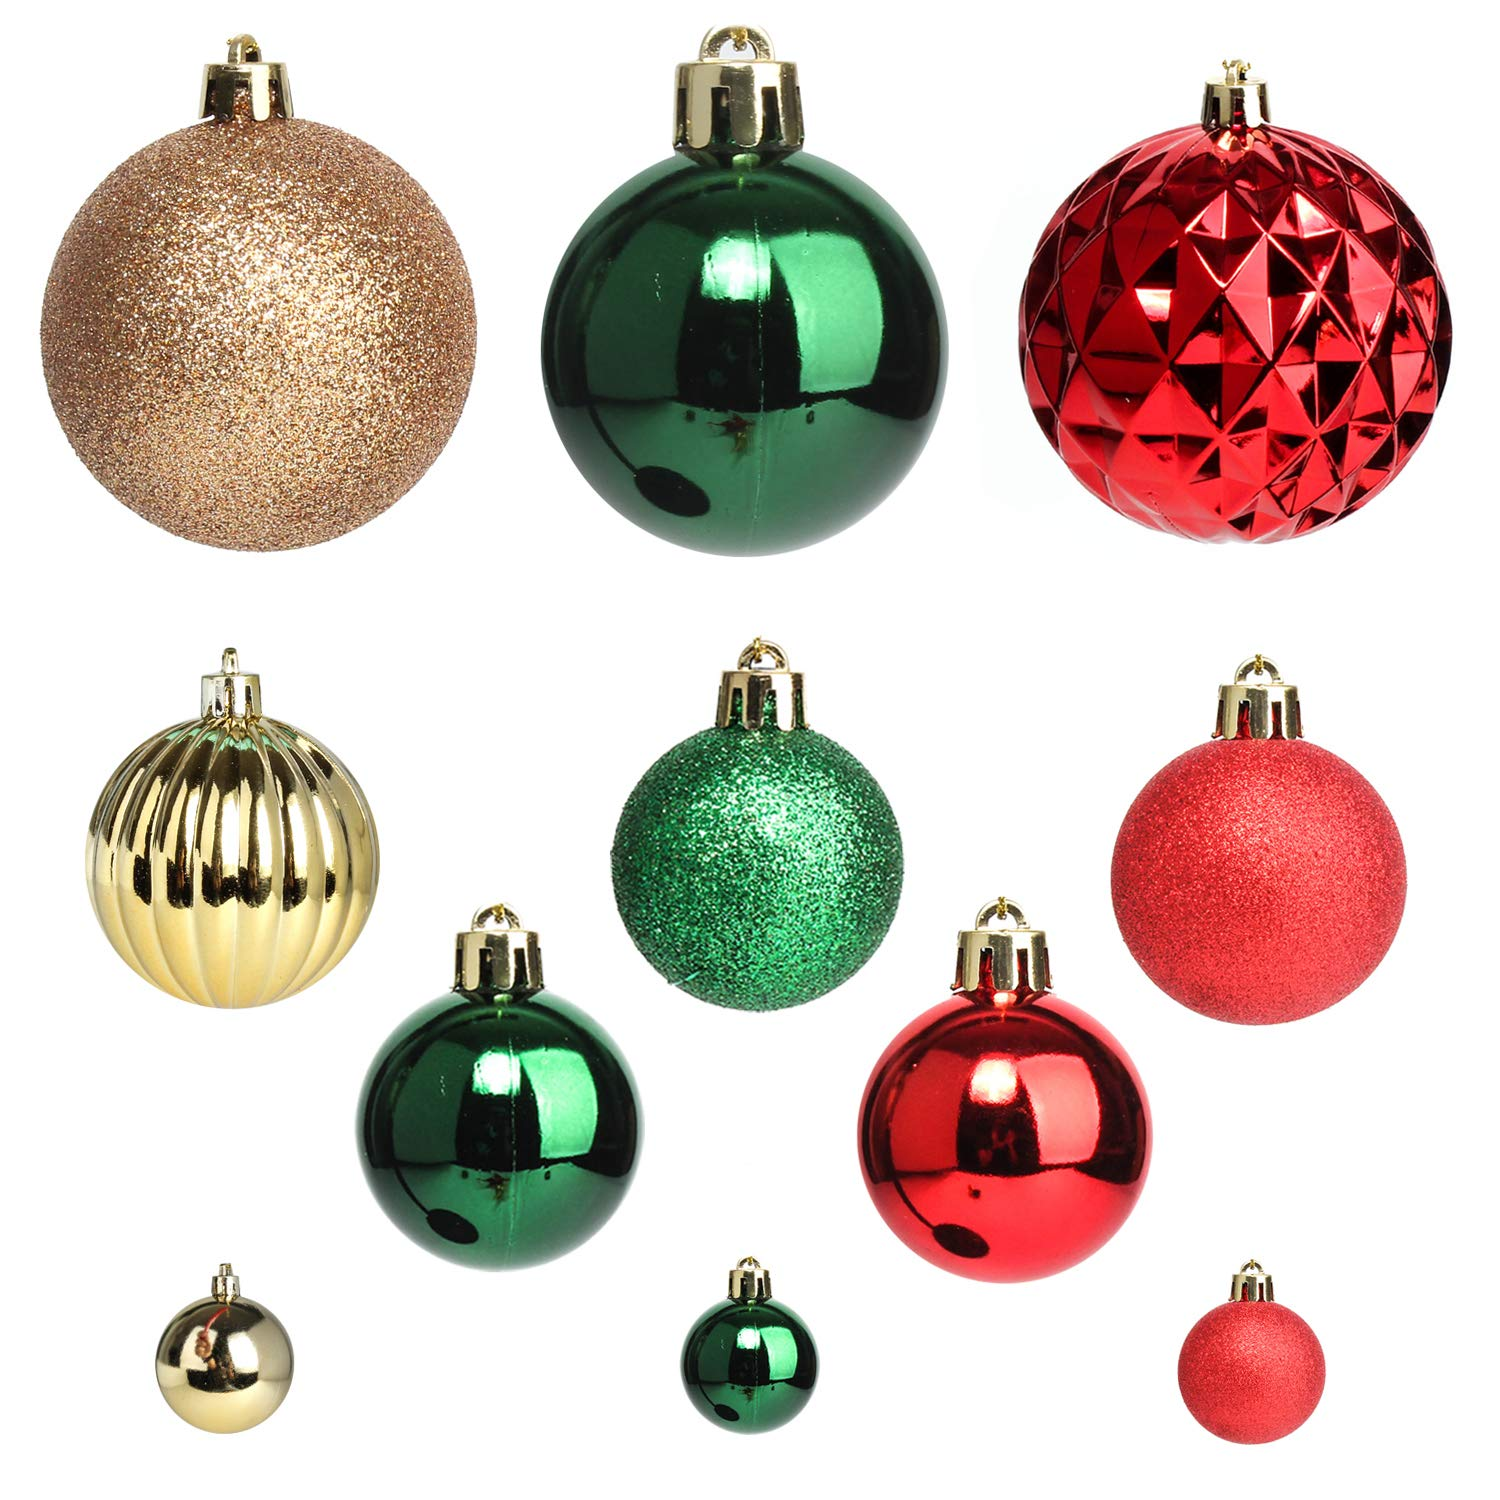 Christmas Tree Balls Decorations.Jusdreen Christmas Tree Hanging Balls Decoration Roping 50 Pcs Baubles Set Christmas Package Tree Ornament Red Gold Green